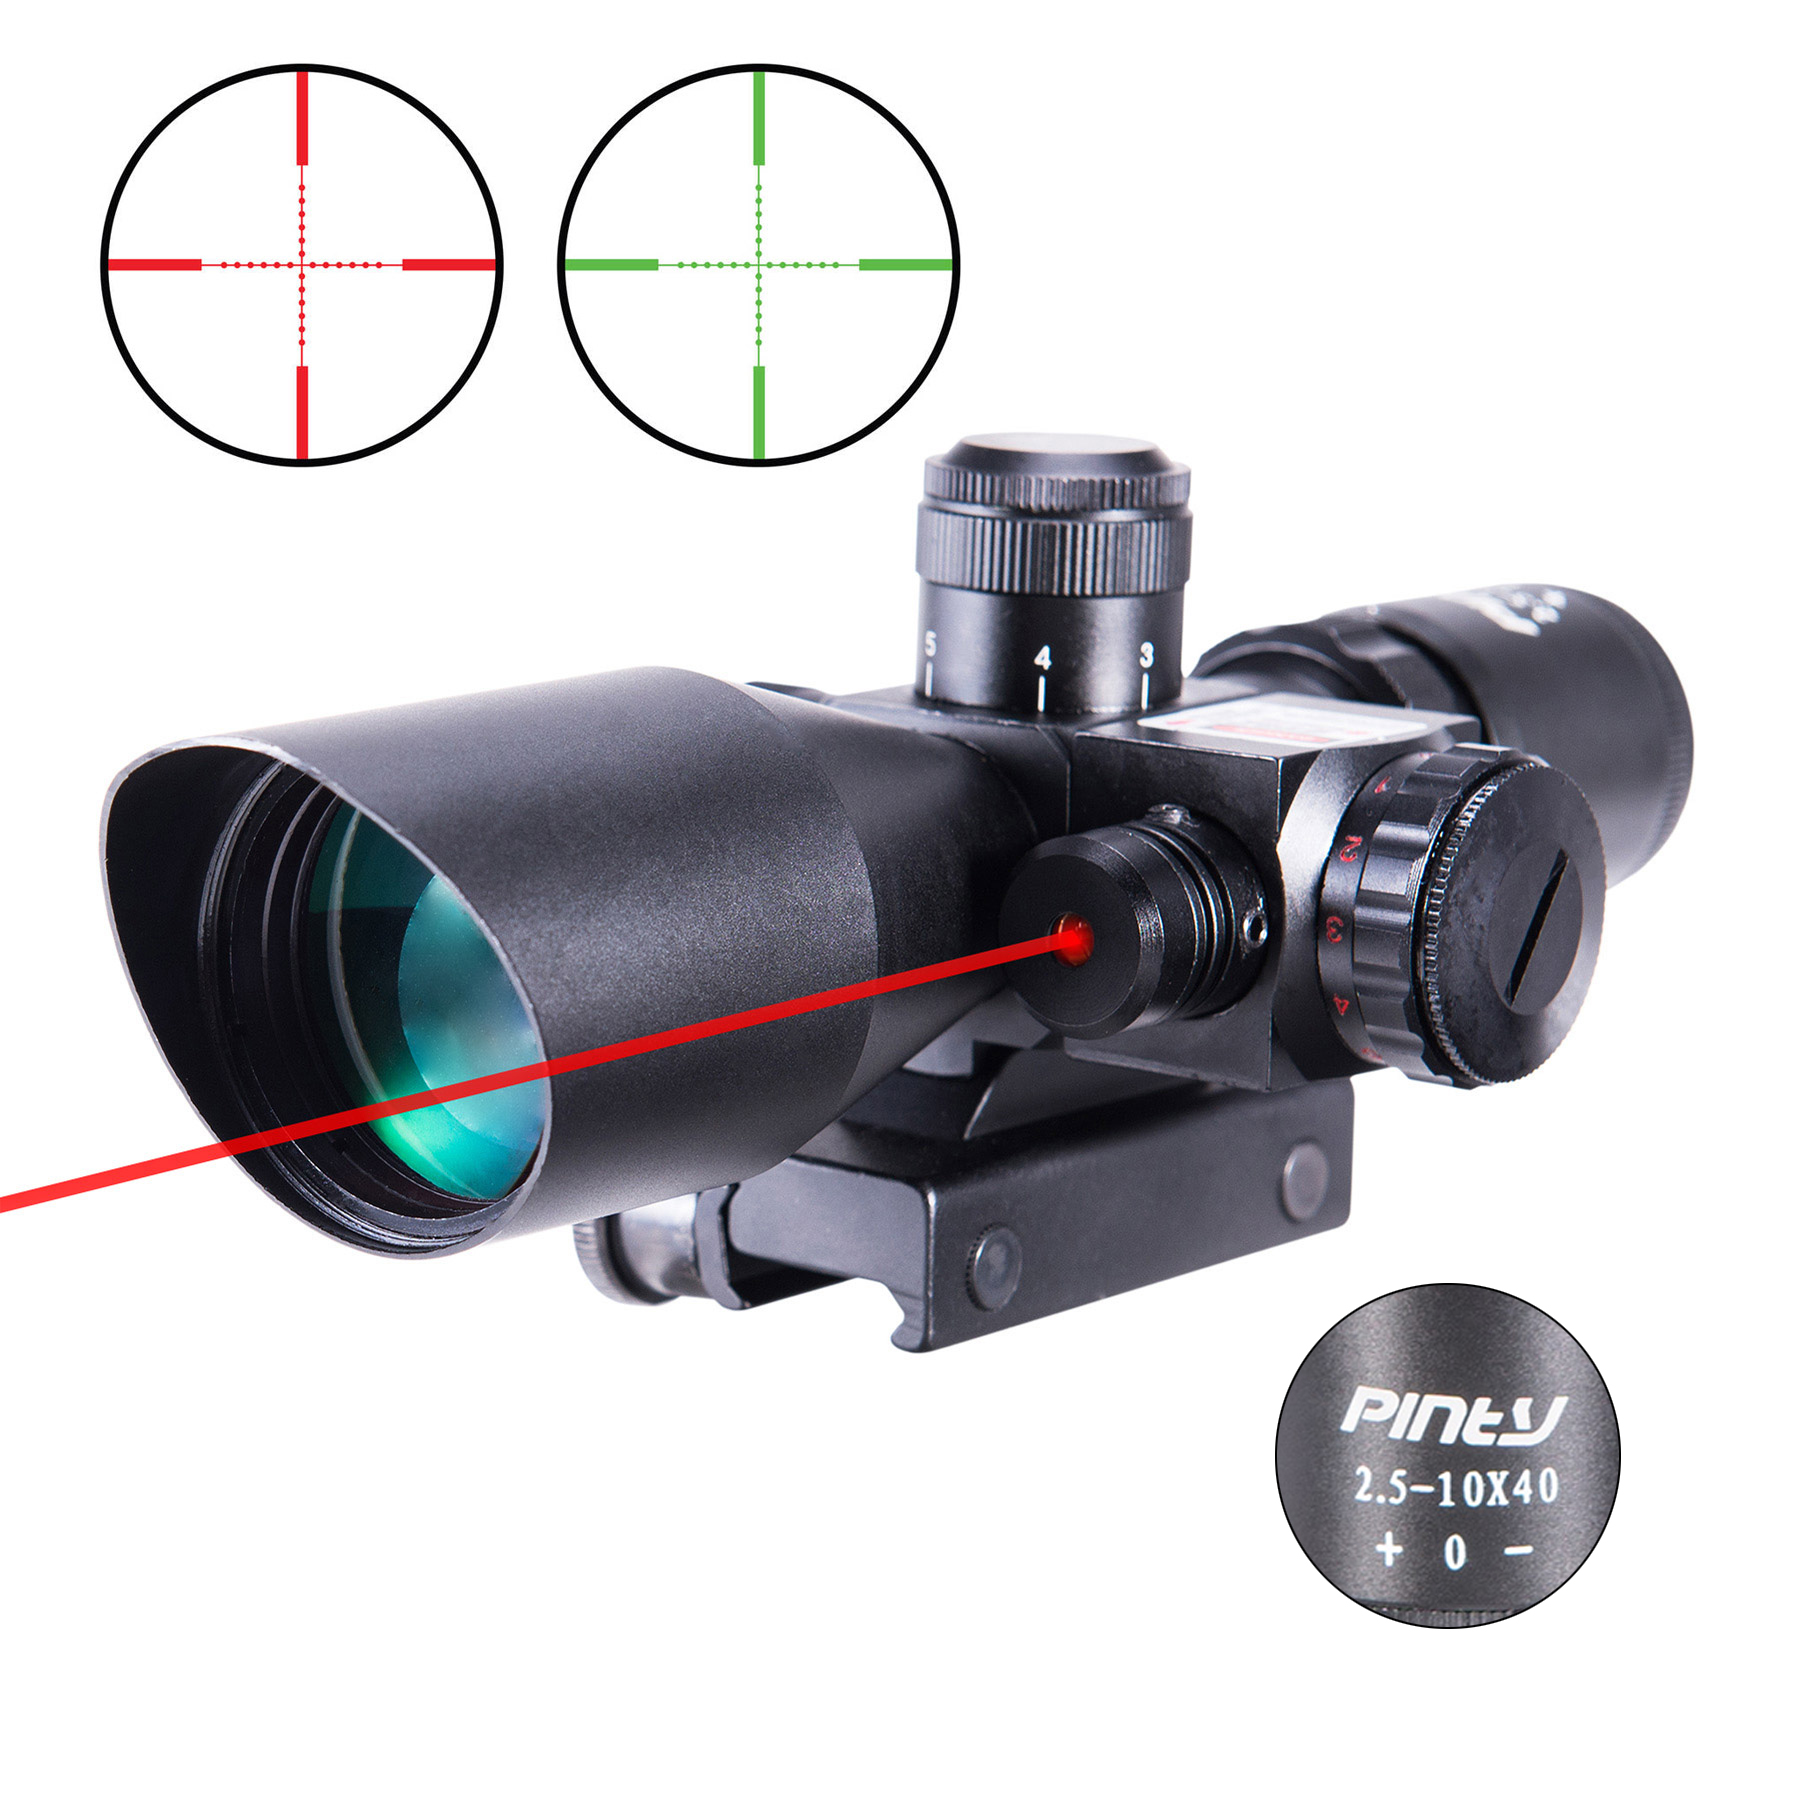 Pinty 2.5-10x40 Tactical Rifle Scope Mil-dot Dual Illuminated w/ Red Laser & Mount